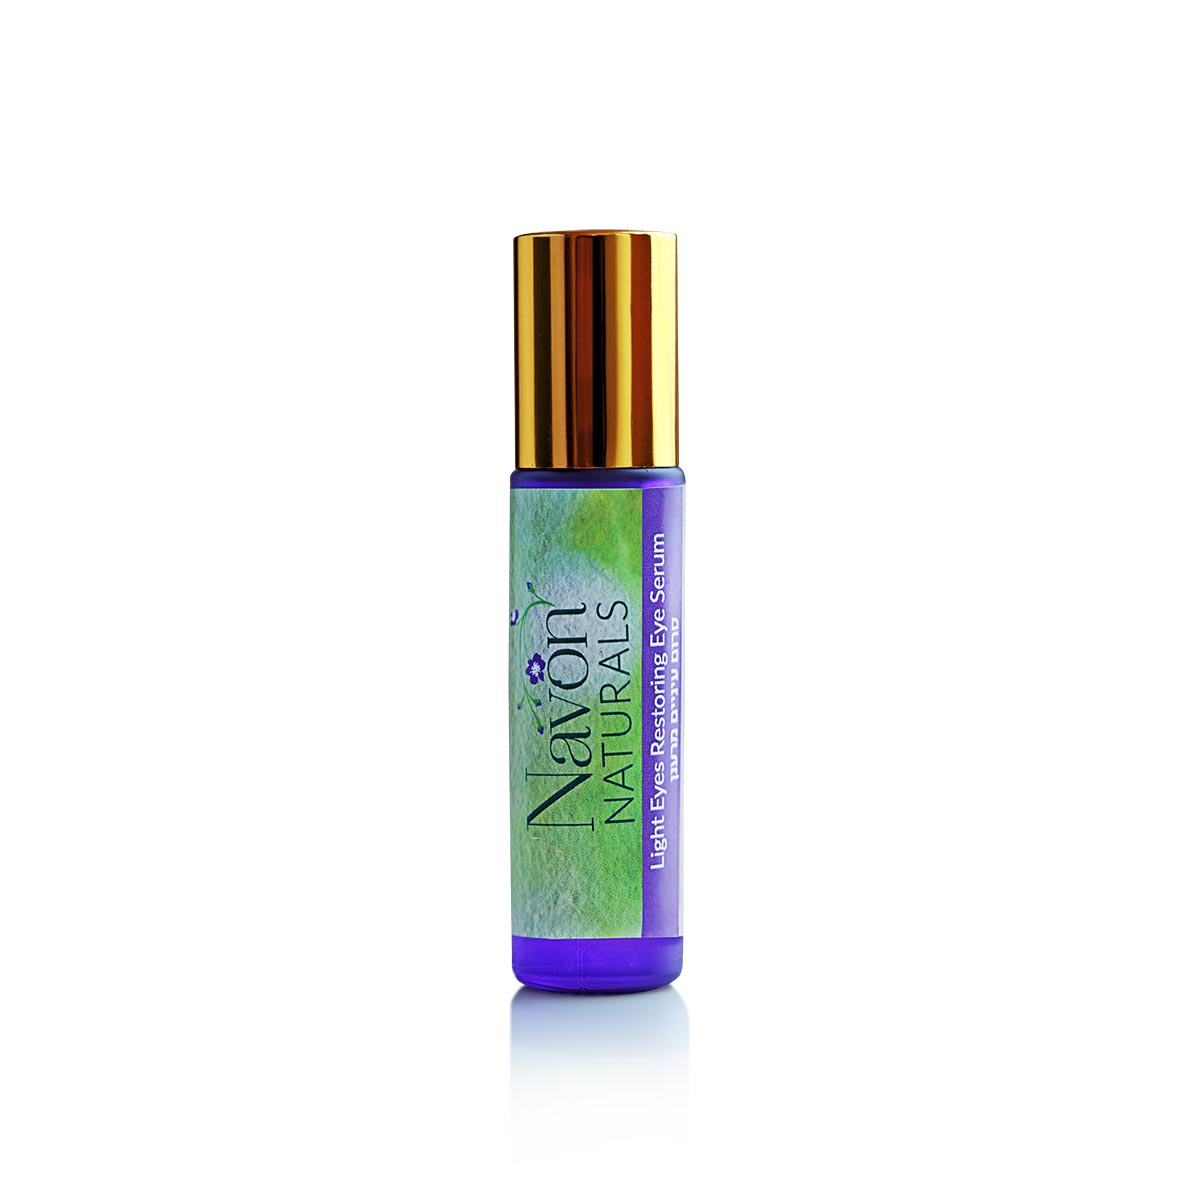 Light Eyes Restorative Eye Serum